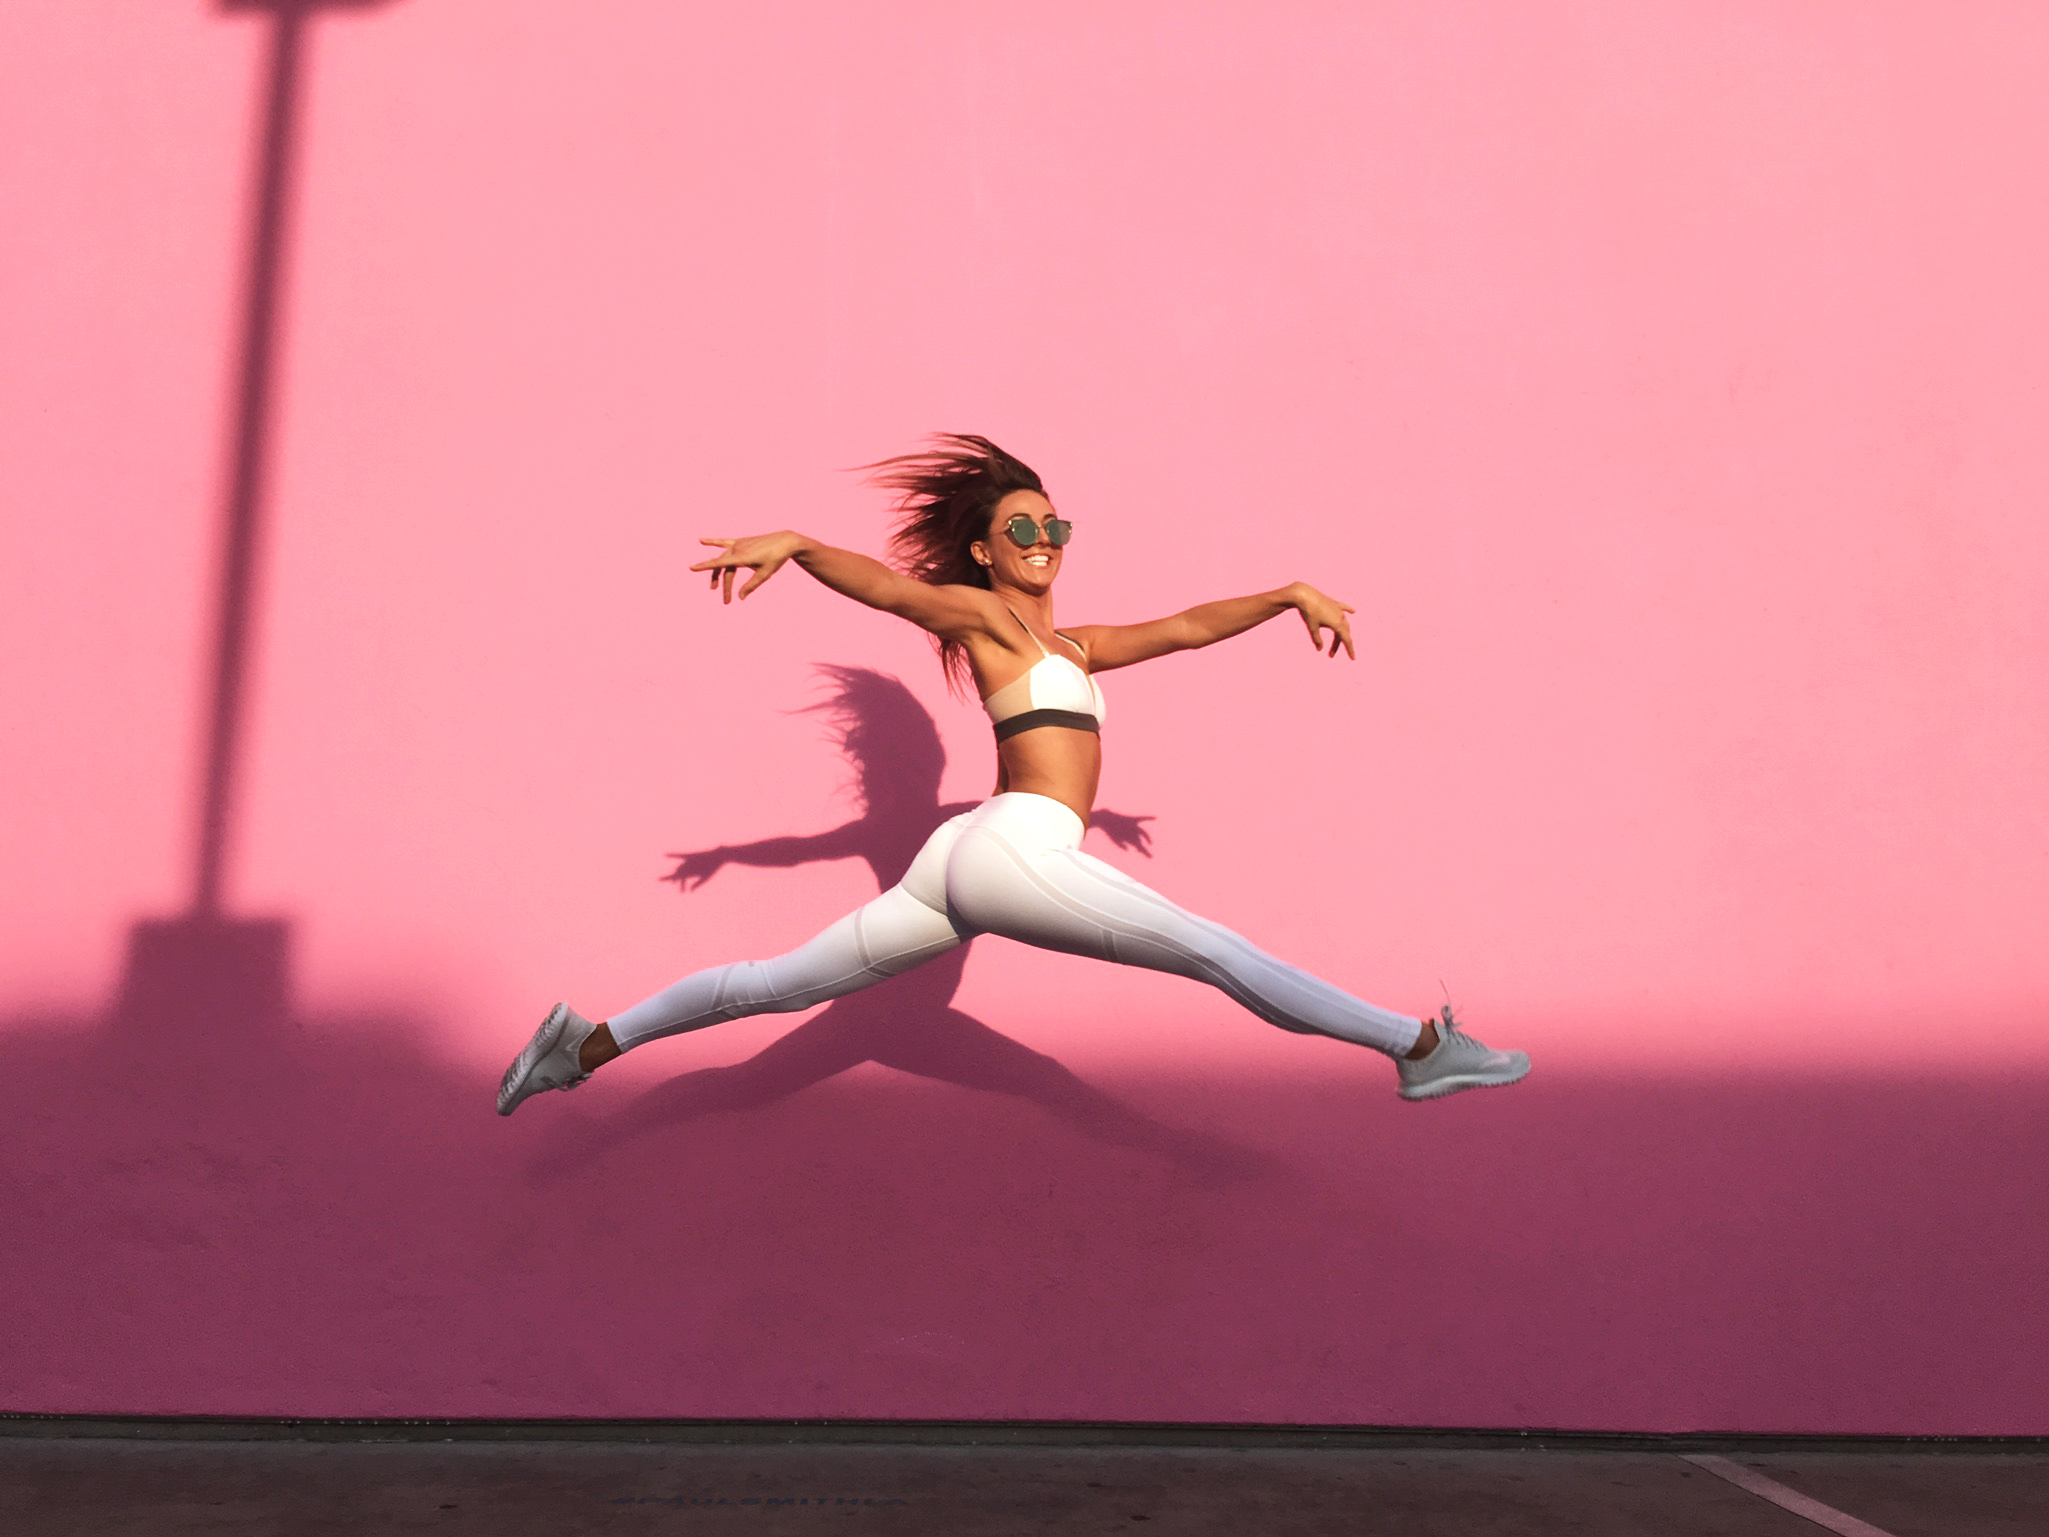 alo-yoga-paul-smith-pink-wall-6.jpg